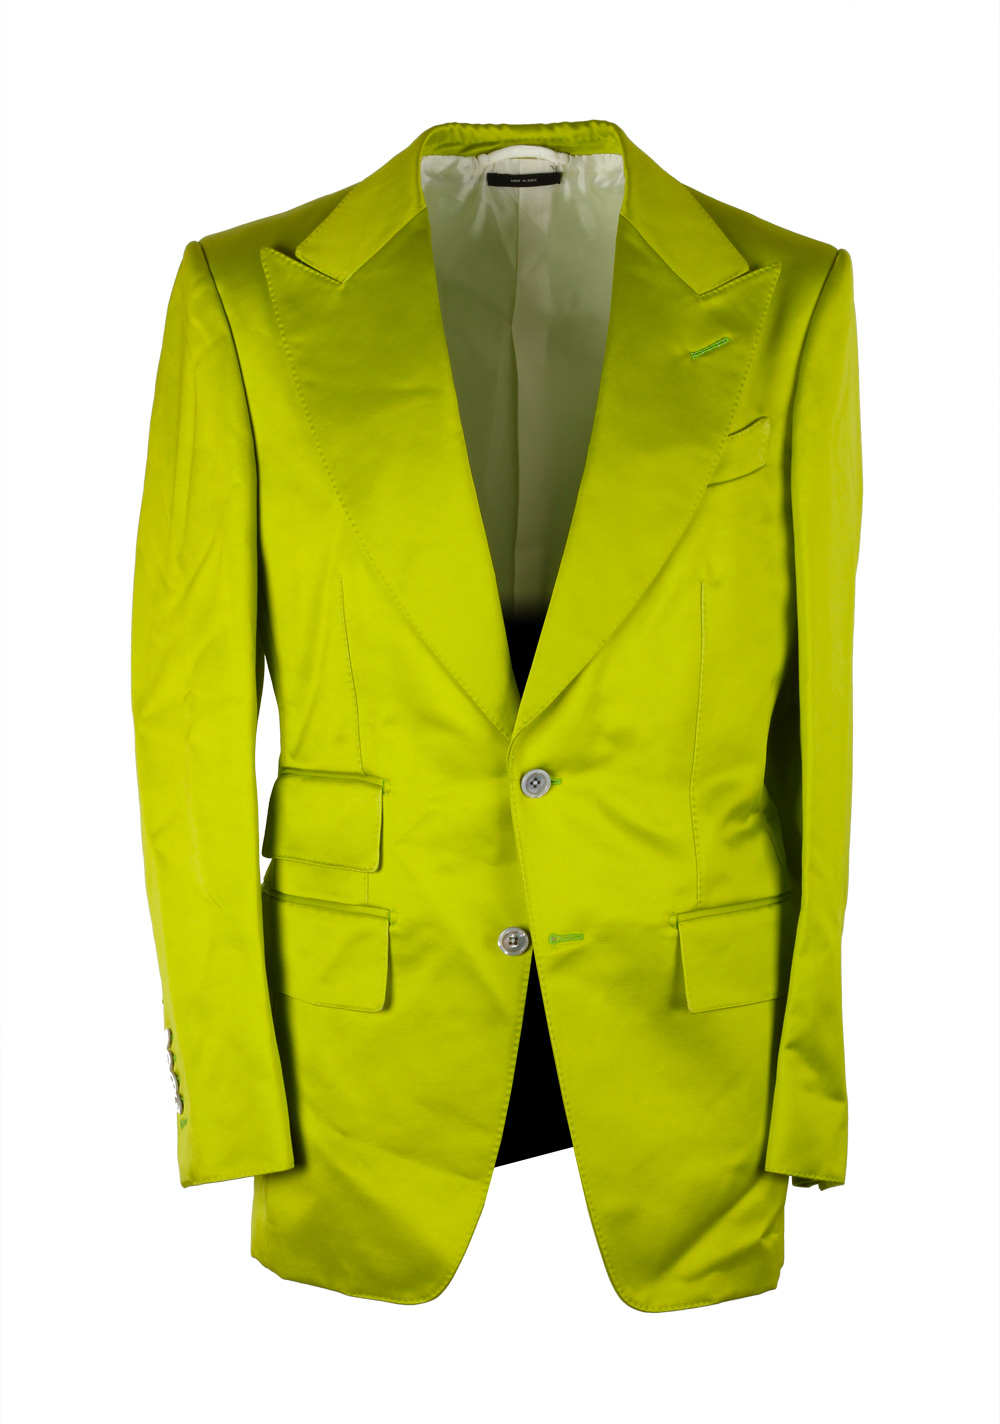 TOM FORD Buckley Green Suit Size 46 / 36R U.S. Base V | Costume Limité